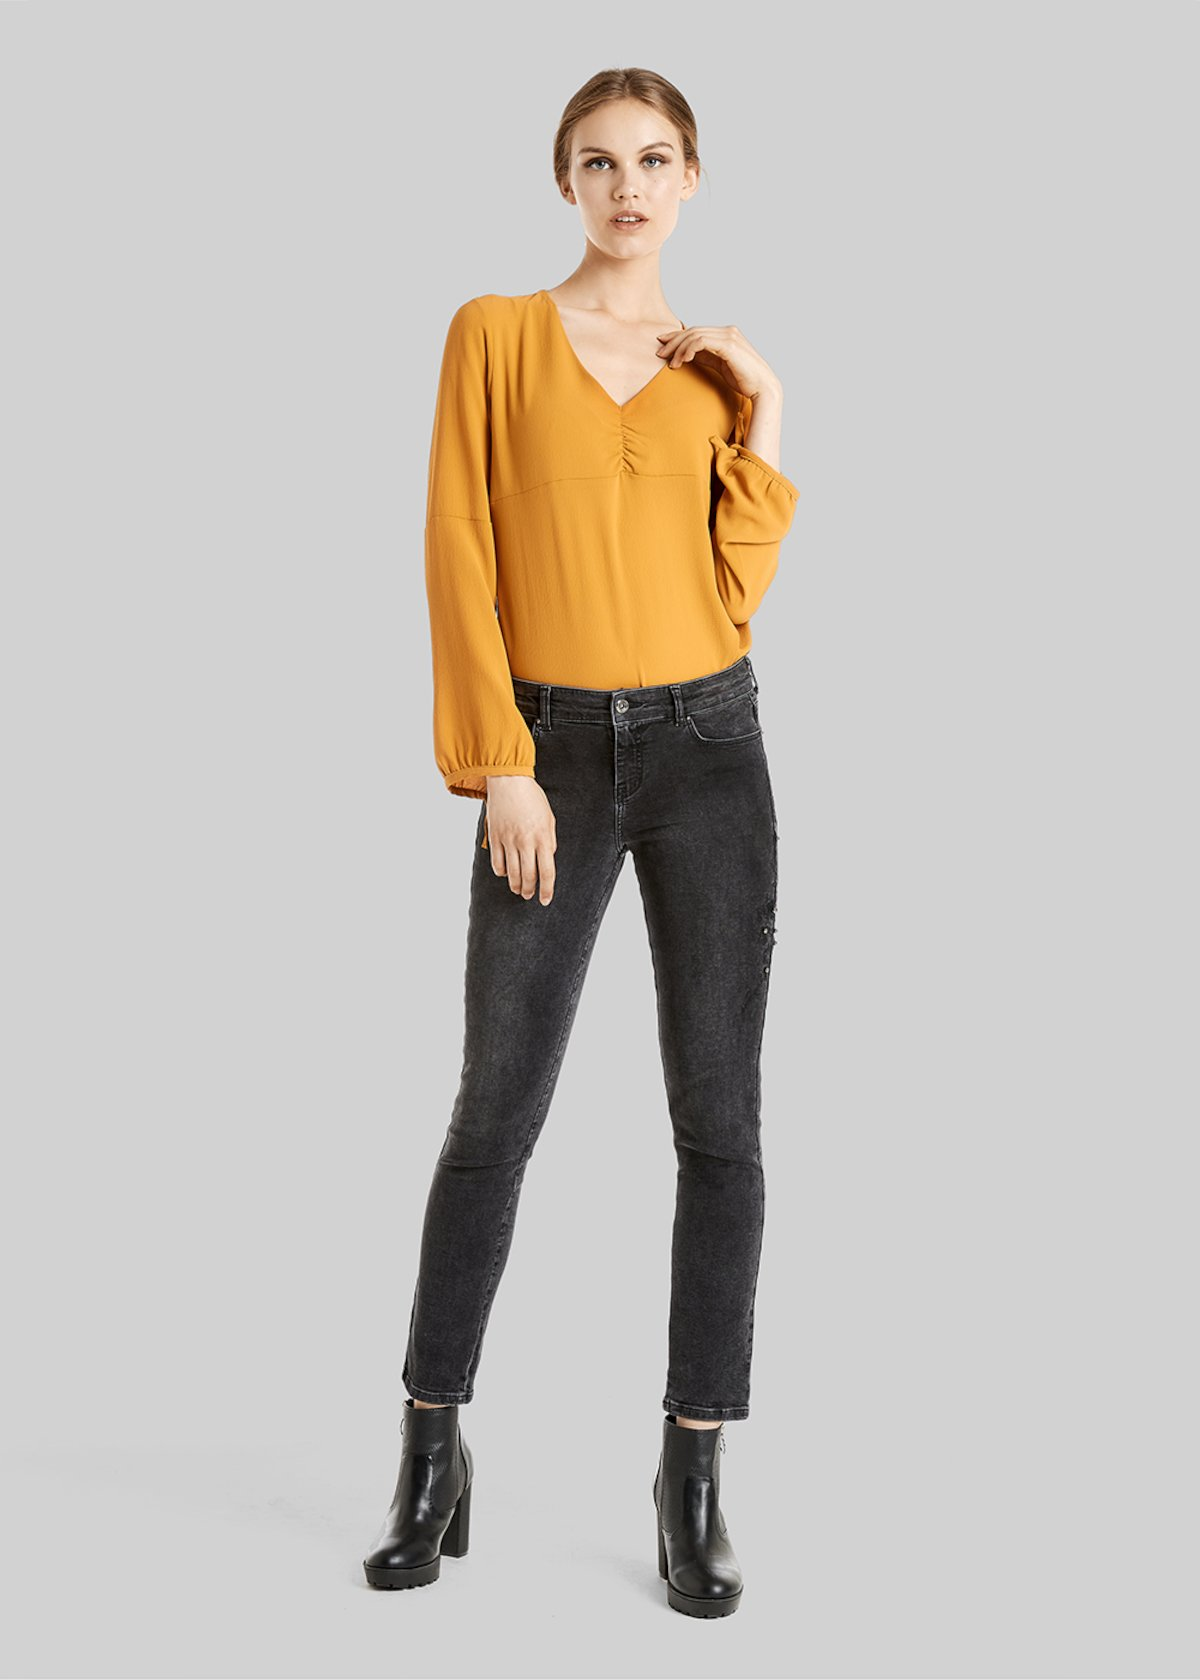 Clara blouse with curling on the neckline